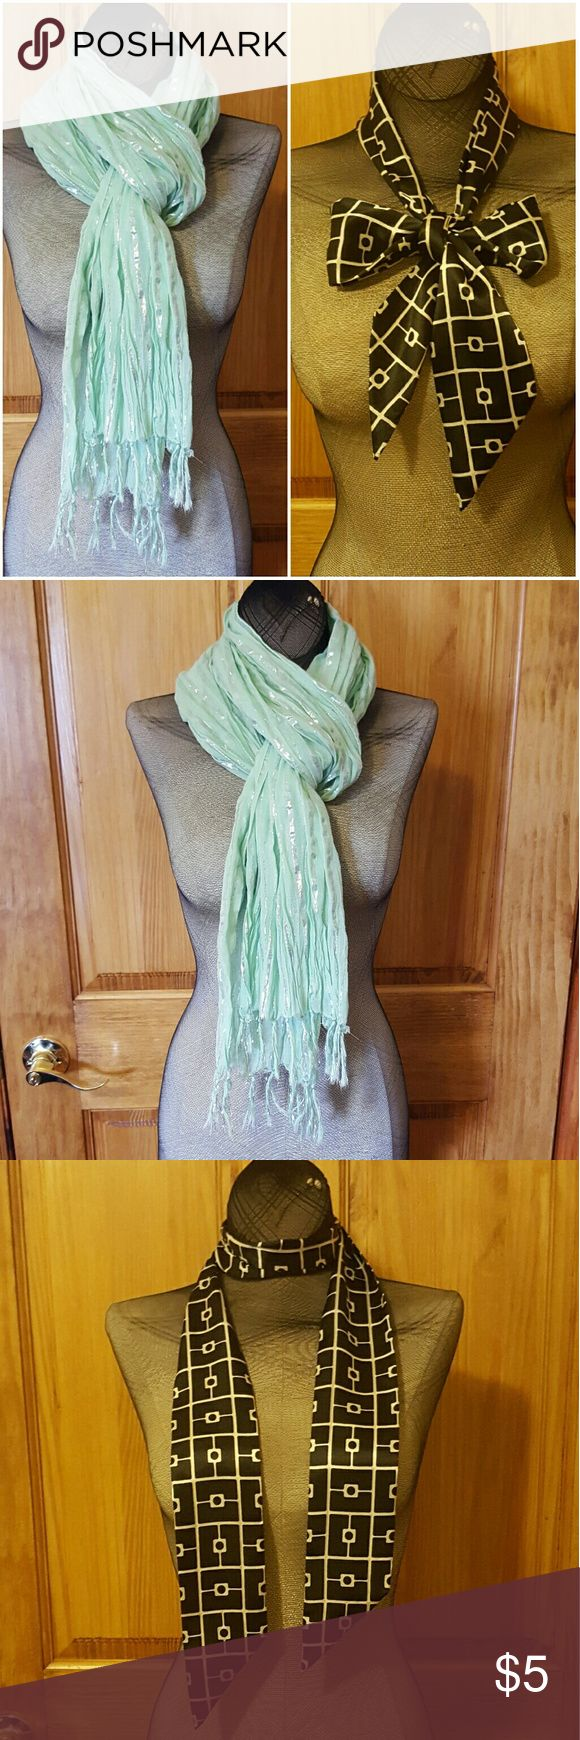 Bundle of 2 summer scarves Bundle of 2 summer scarves. Both brand new never worn. Mint scarf has tags, black scarf tags have been cut but never worn. Accessories Scarves & Wraps